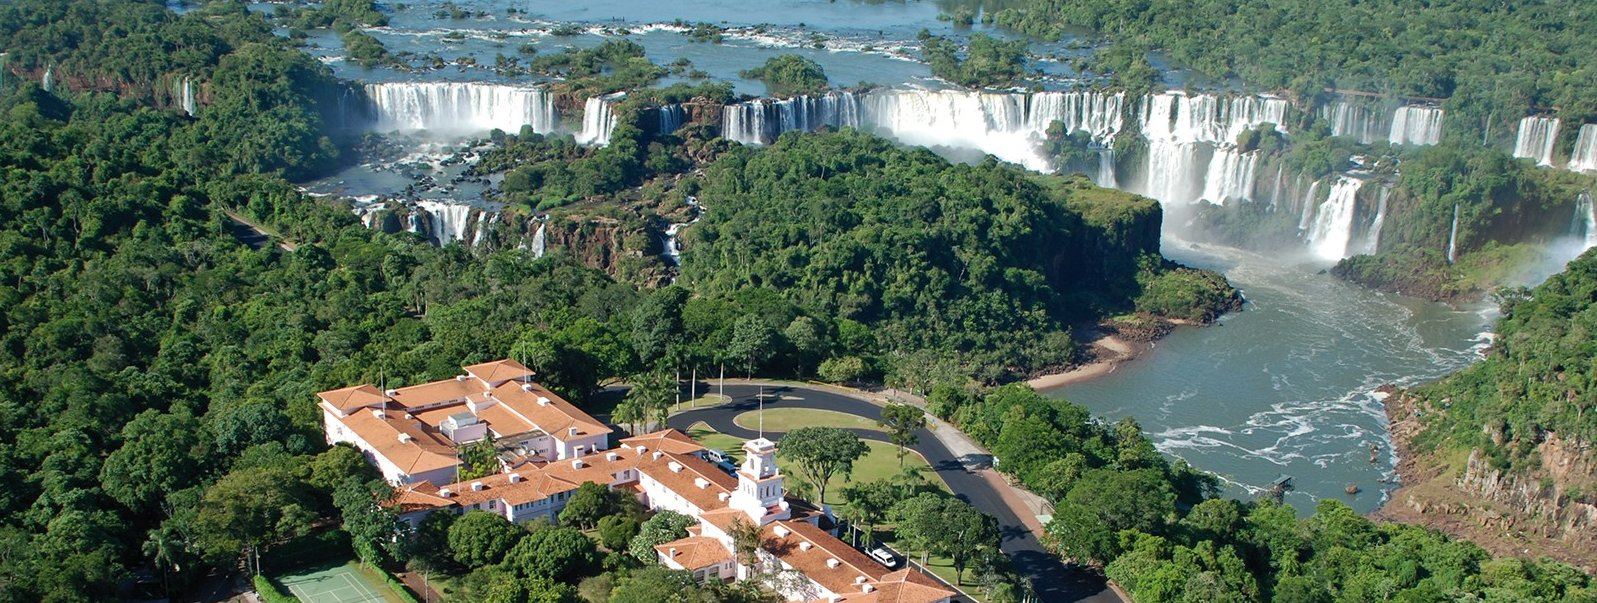 belmond-hotel-das-Cataratas-luxury-brazil-holiday